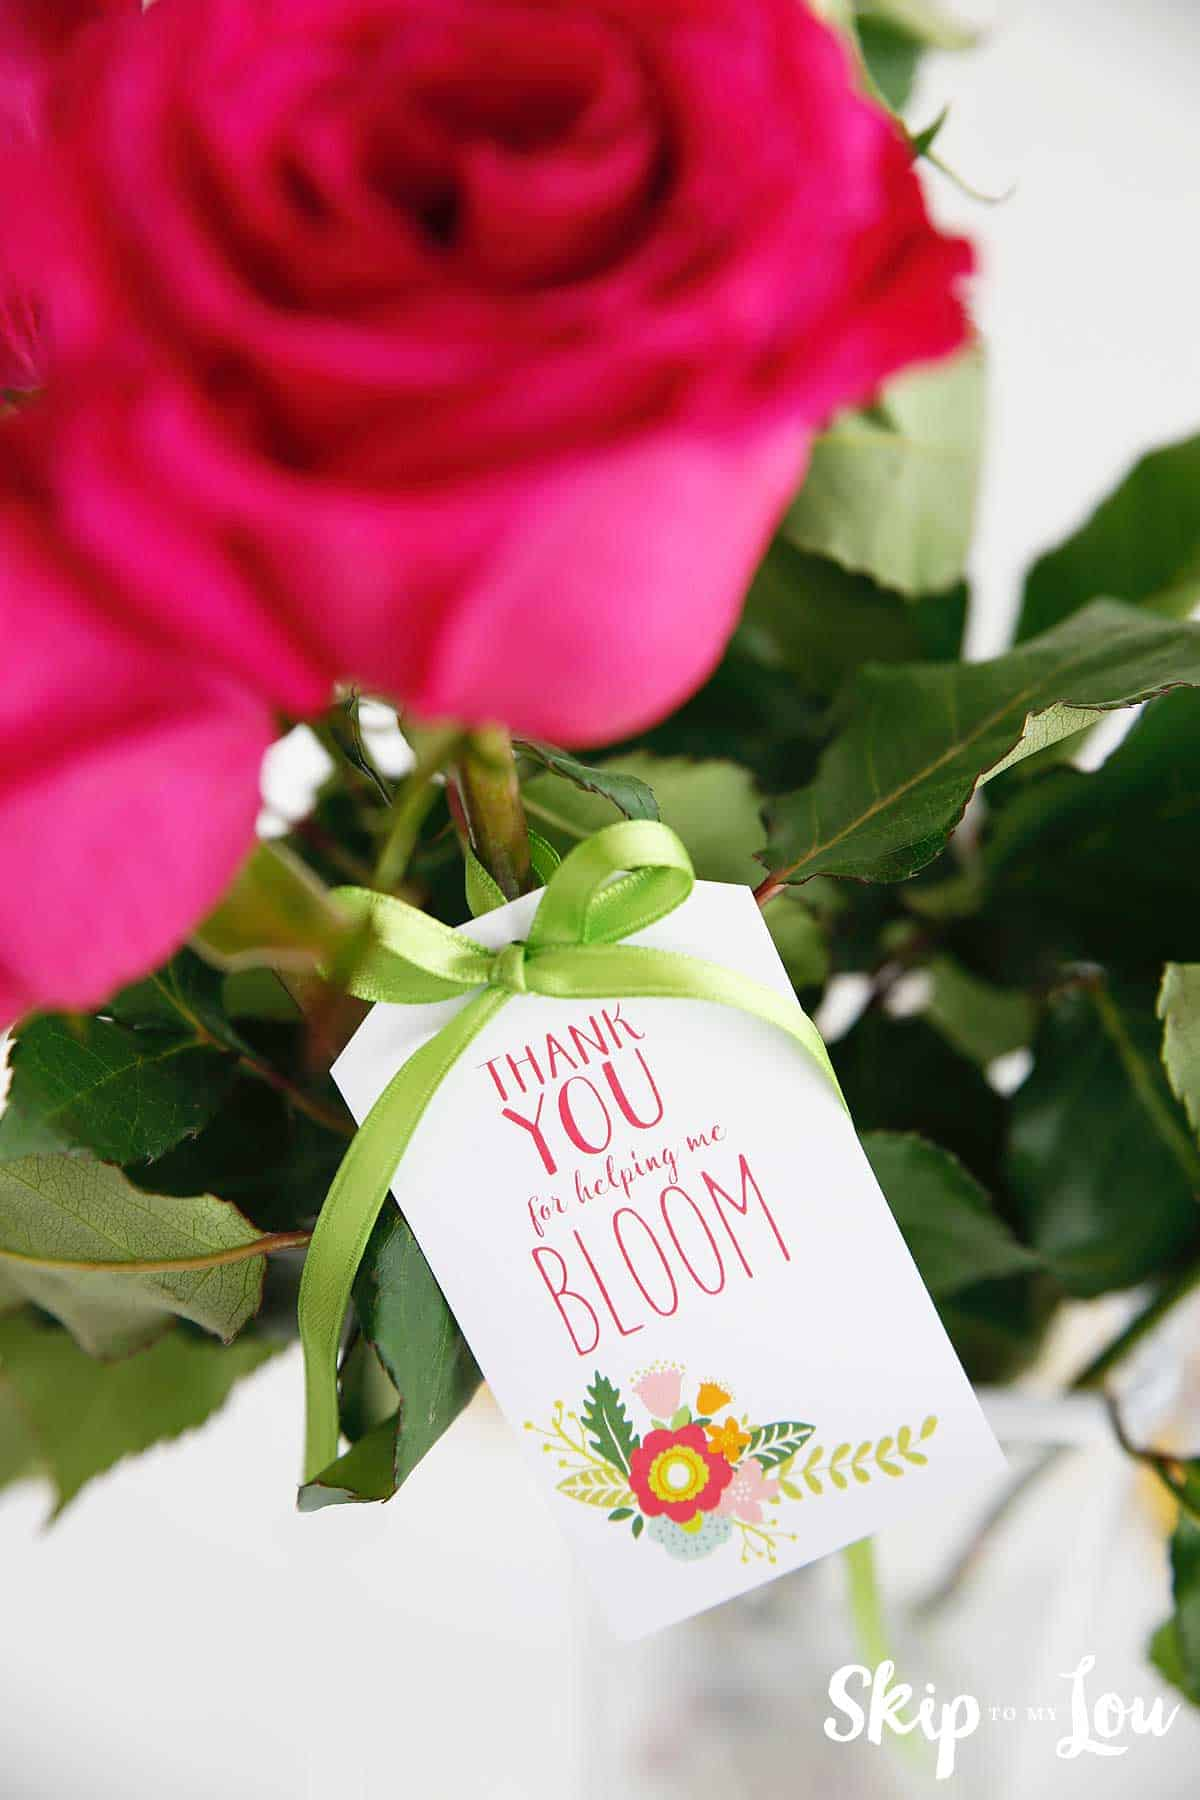 thank you for helping me bloom tag tied to pink roses